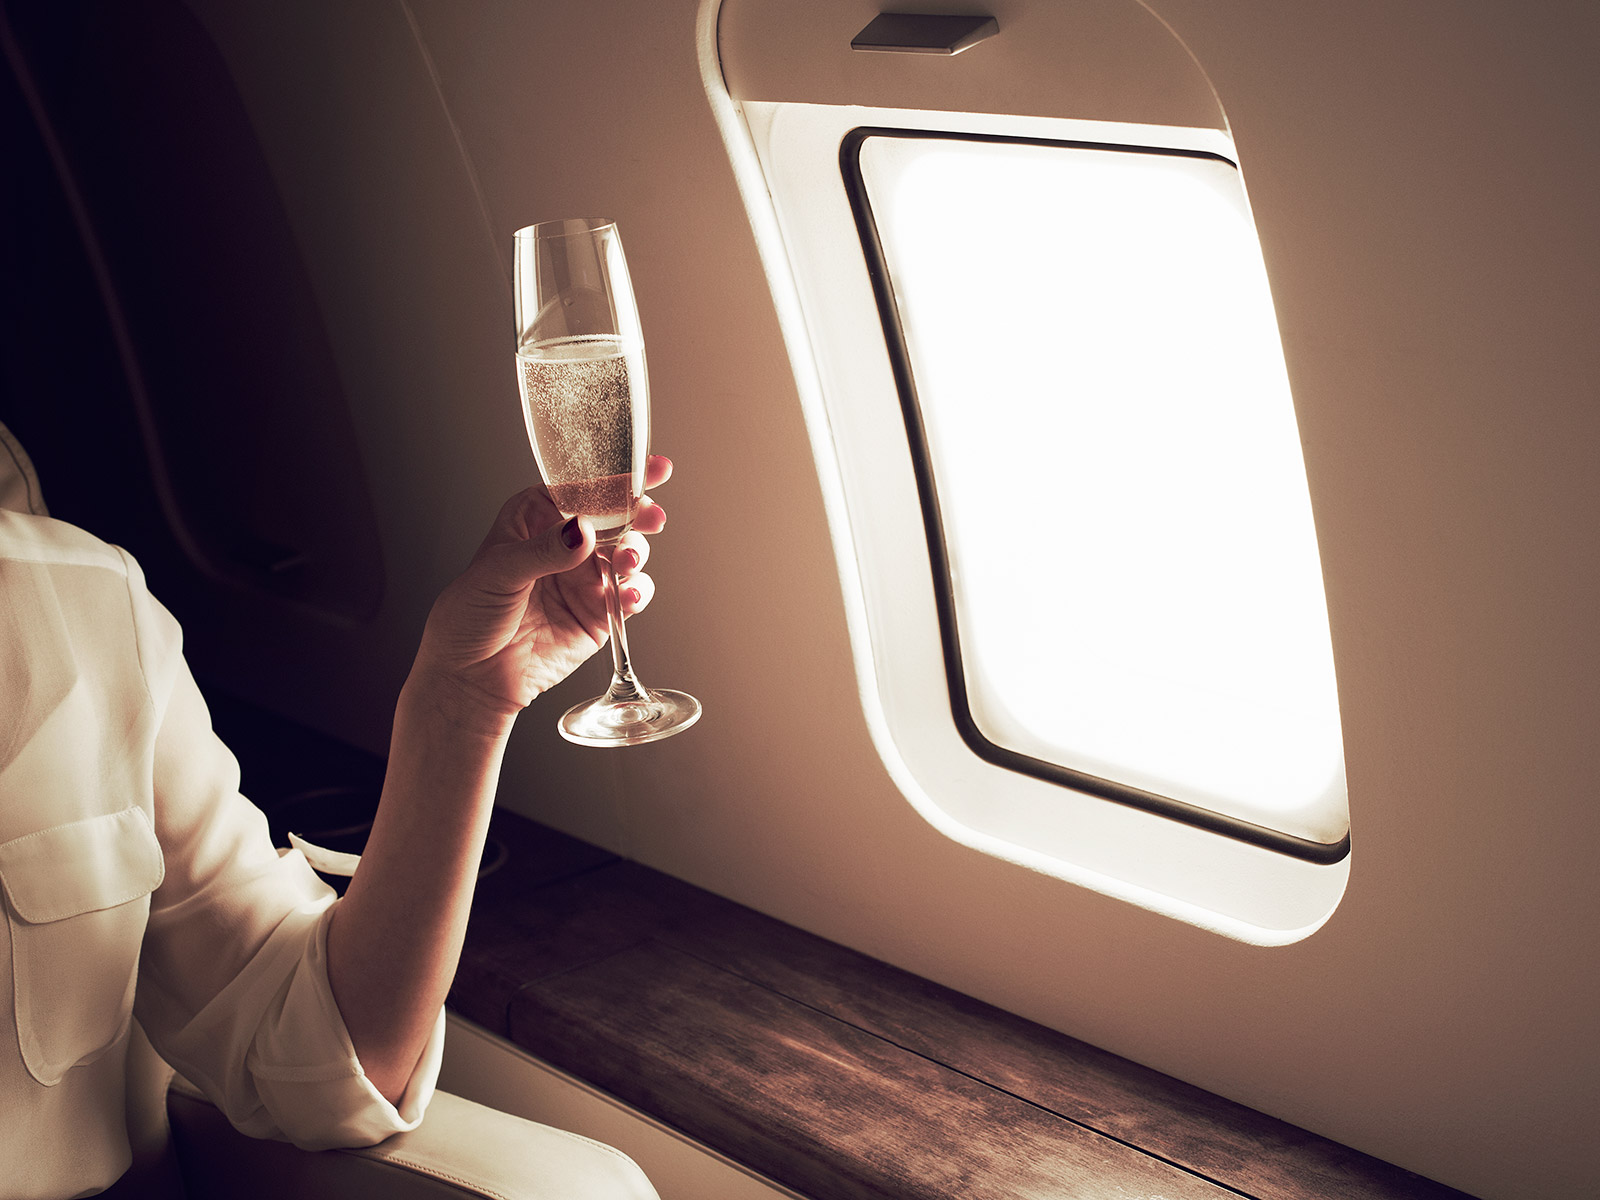 american airlines free wine and beer